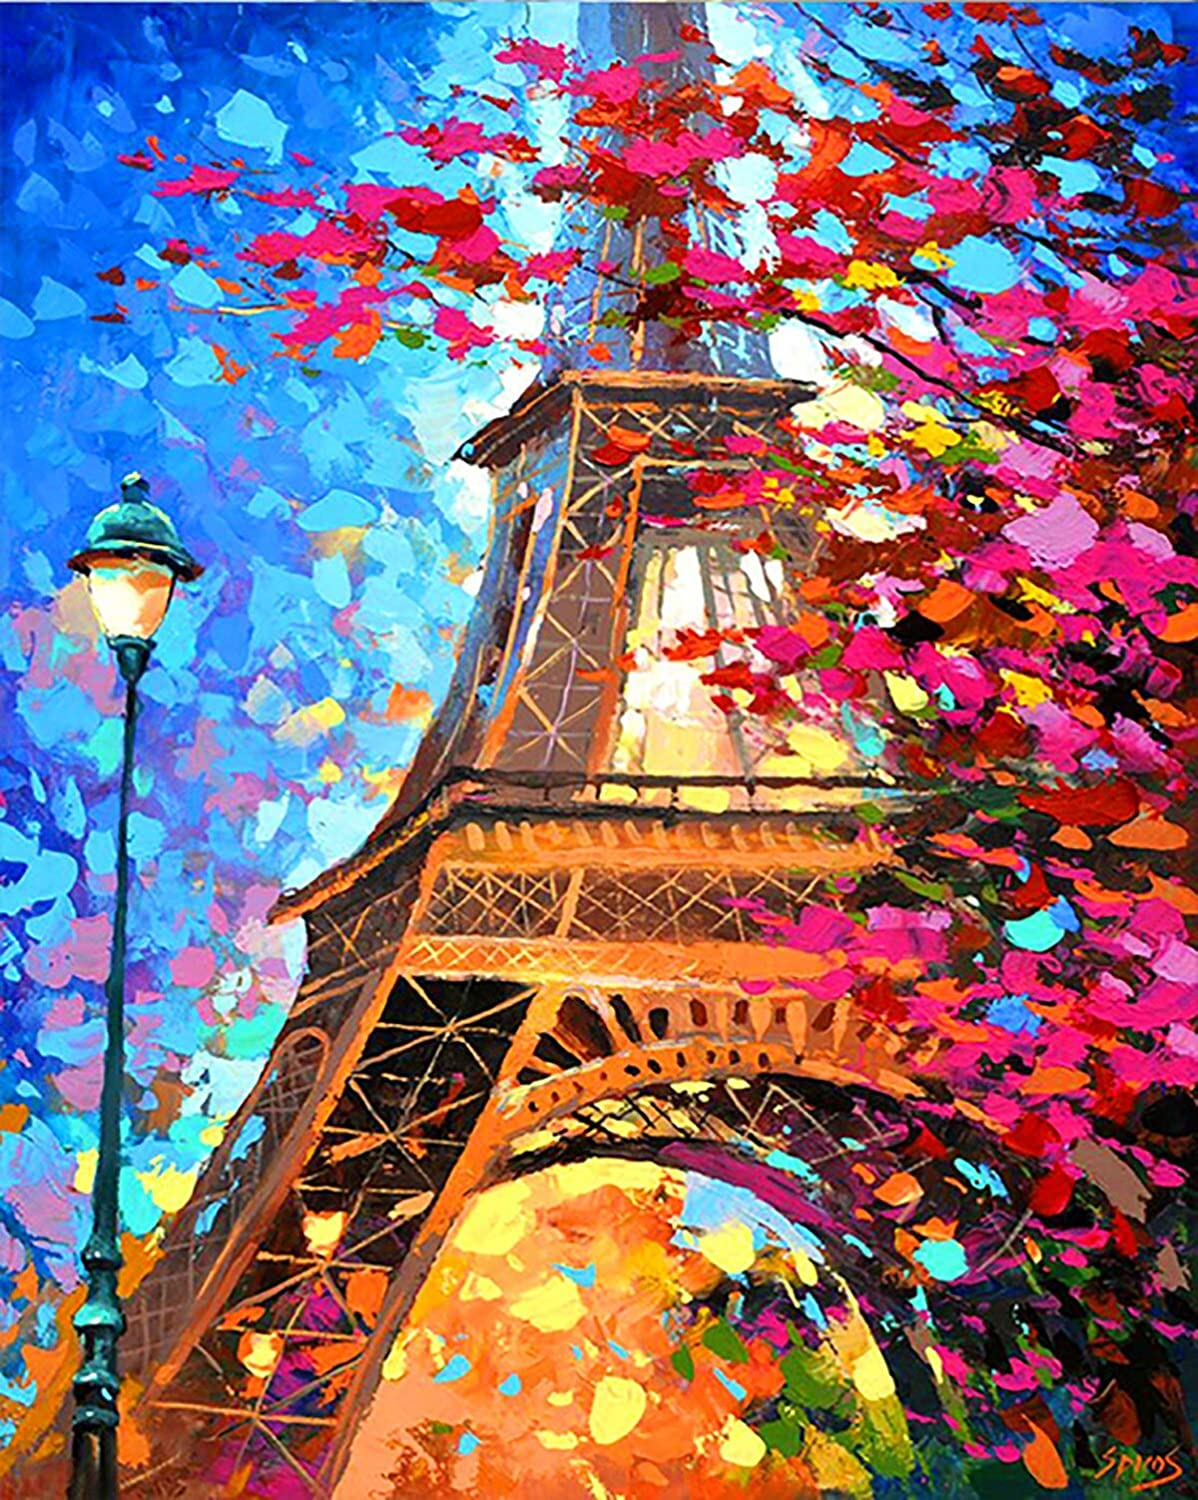 Paint by Number Kits 16 x 20 inch Canvas DIY Oil Painting for Kids, Students, Adults Beginner with Brushes and Acrylic Pigment(Eiffel Tower)